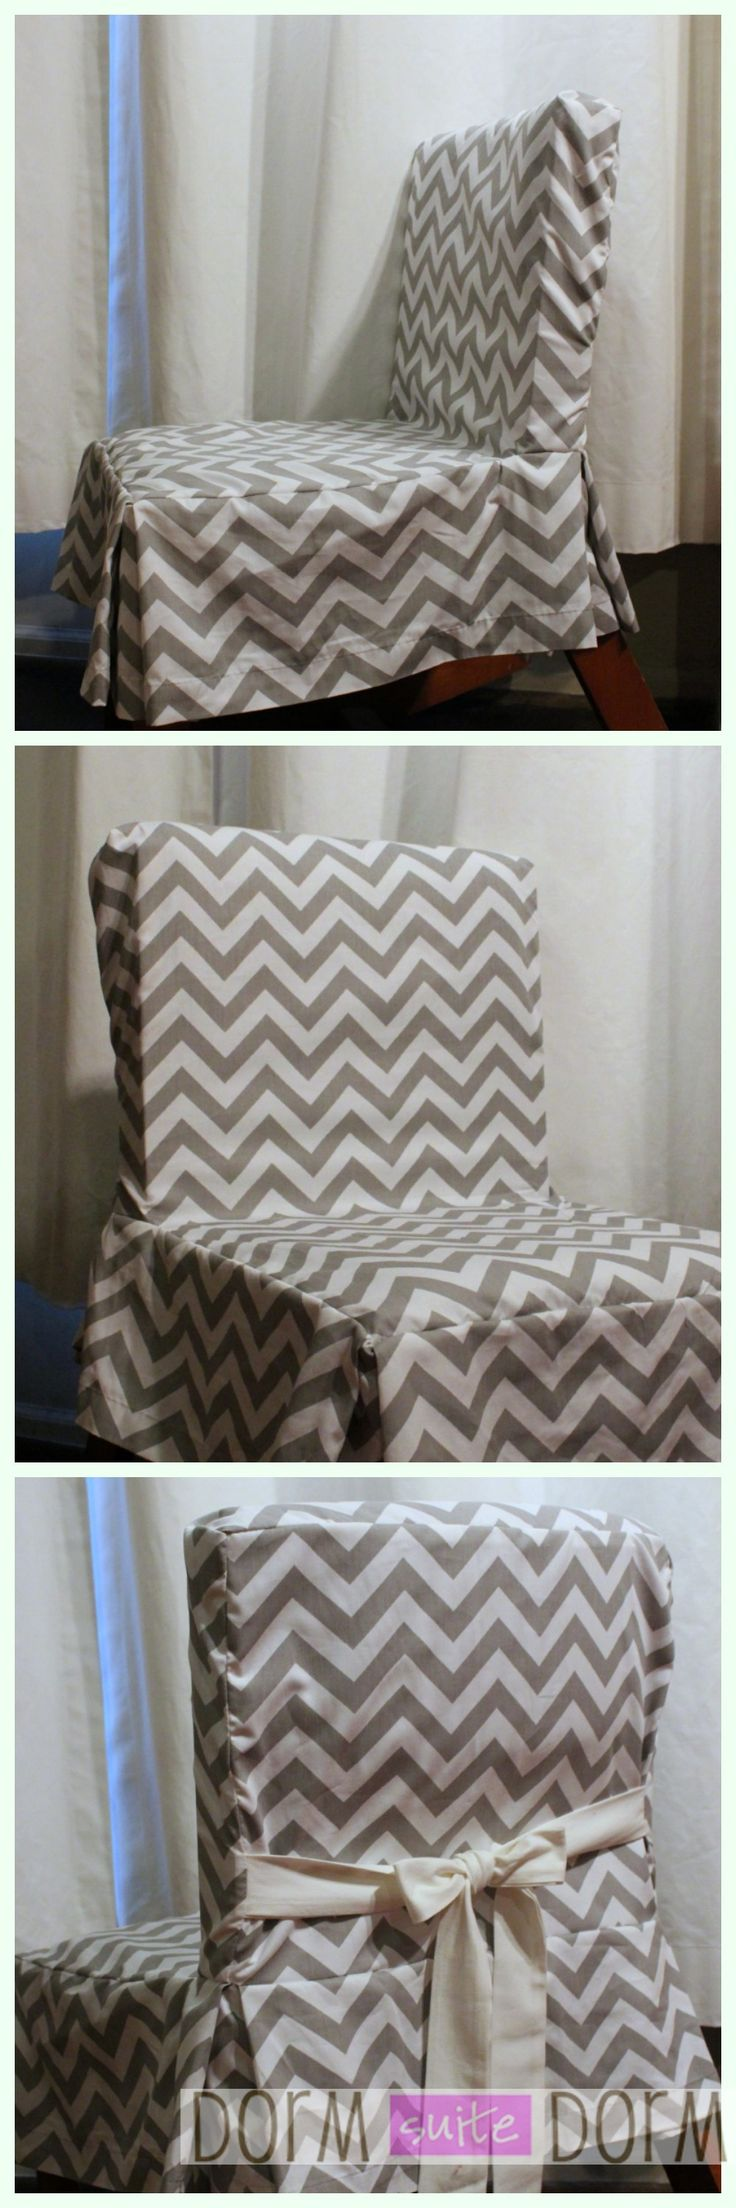 Pin by dorm suite dorm on dorm room chair covers pinterest